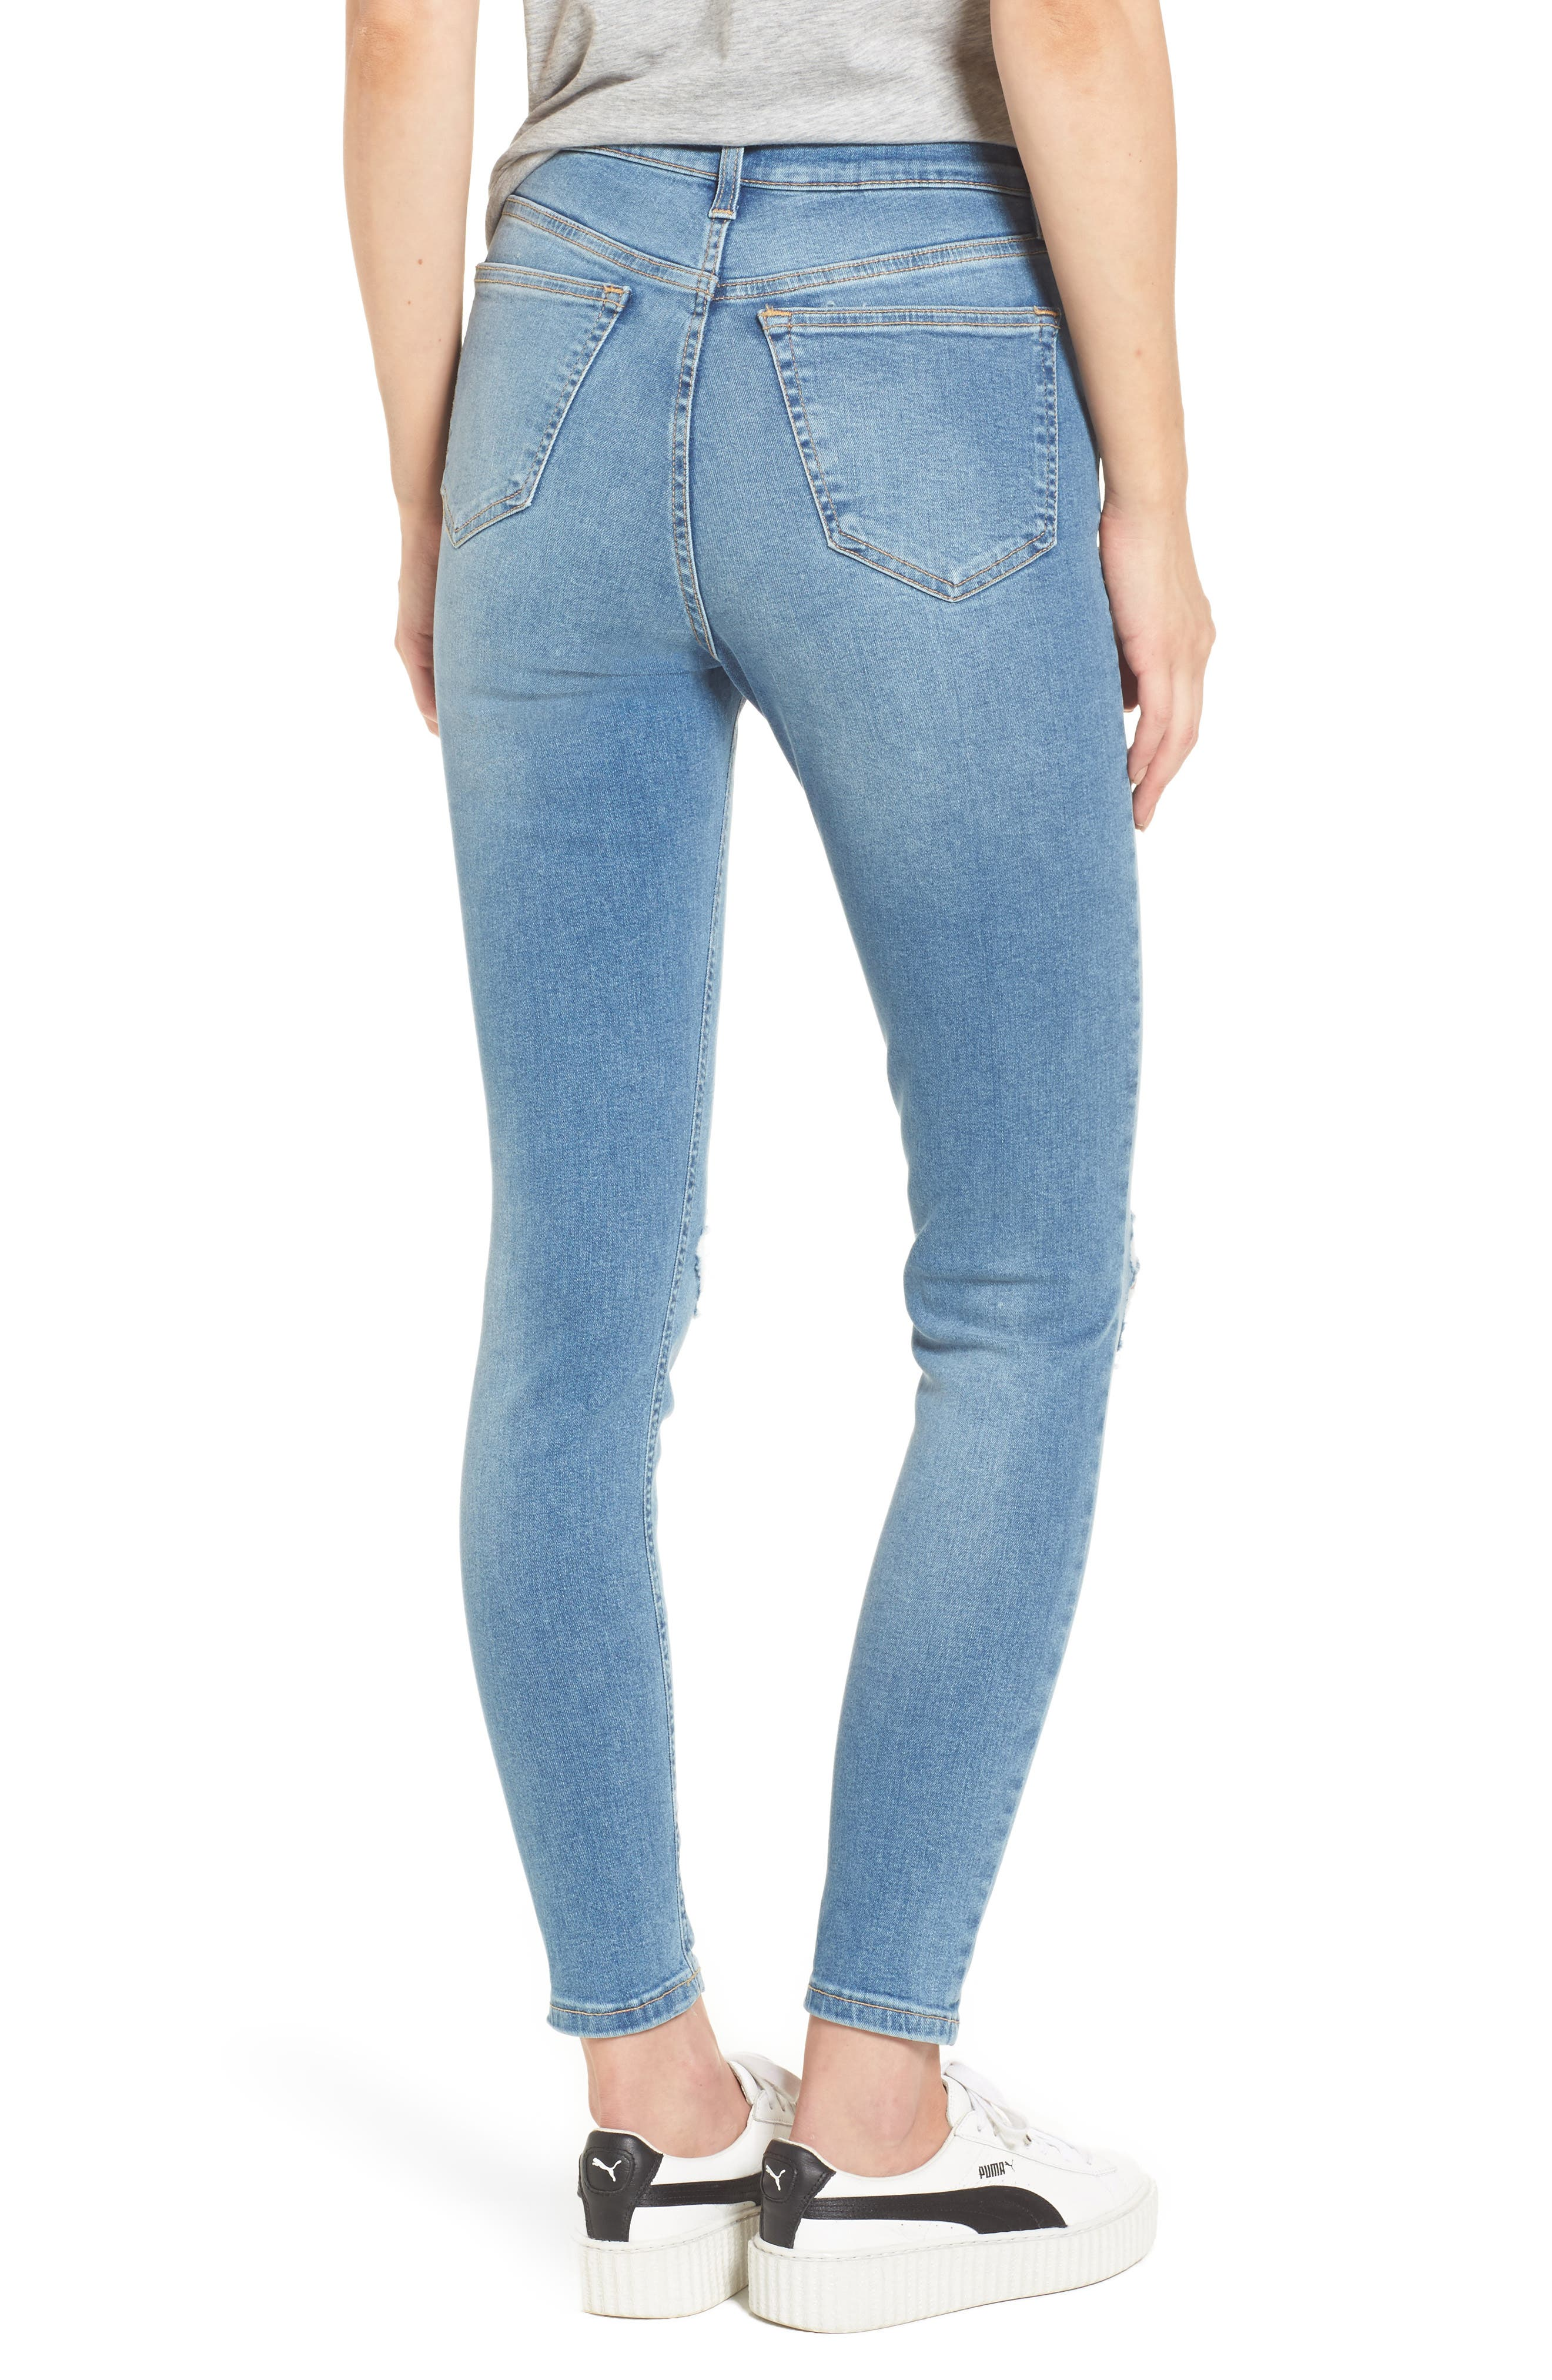 Moto Jamie Ripped High Waist Ankle Skinny Jeans,                             Alternate thumbnail 2, color,                             400